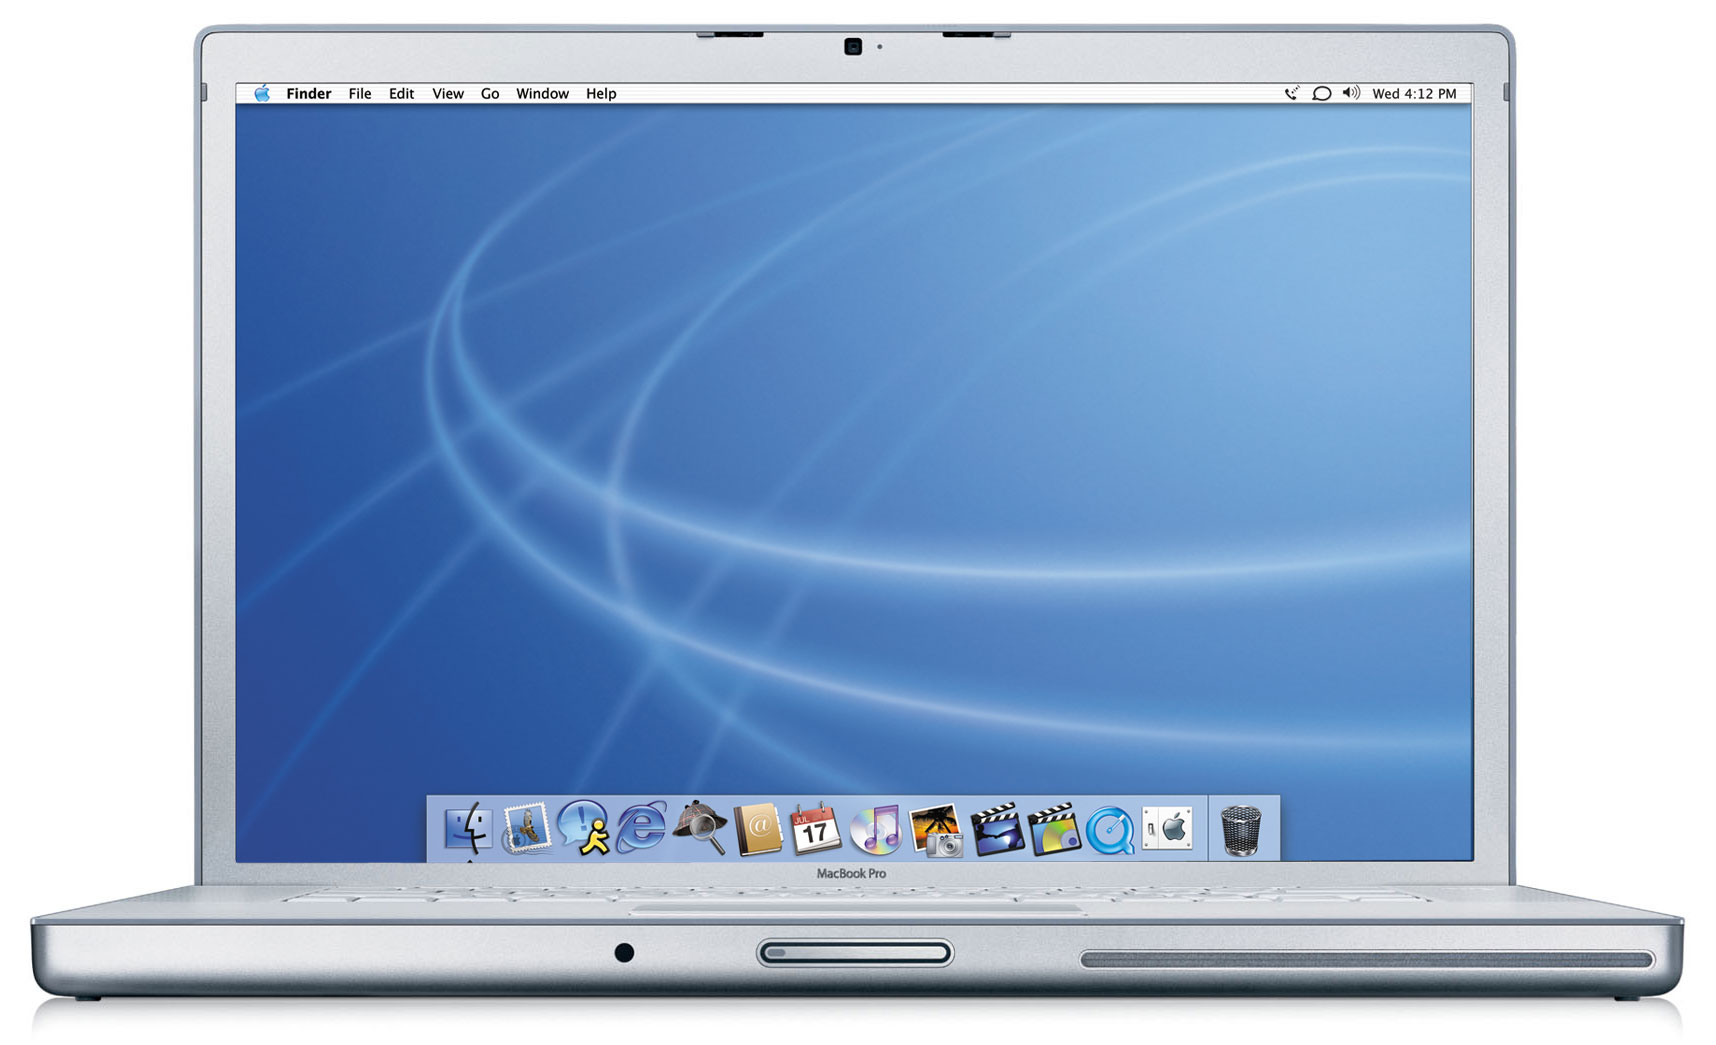 apple_macbook_pro_15_2_s20003.jpg